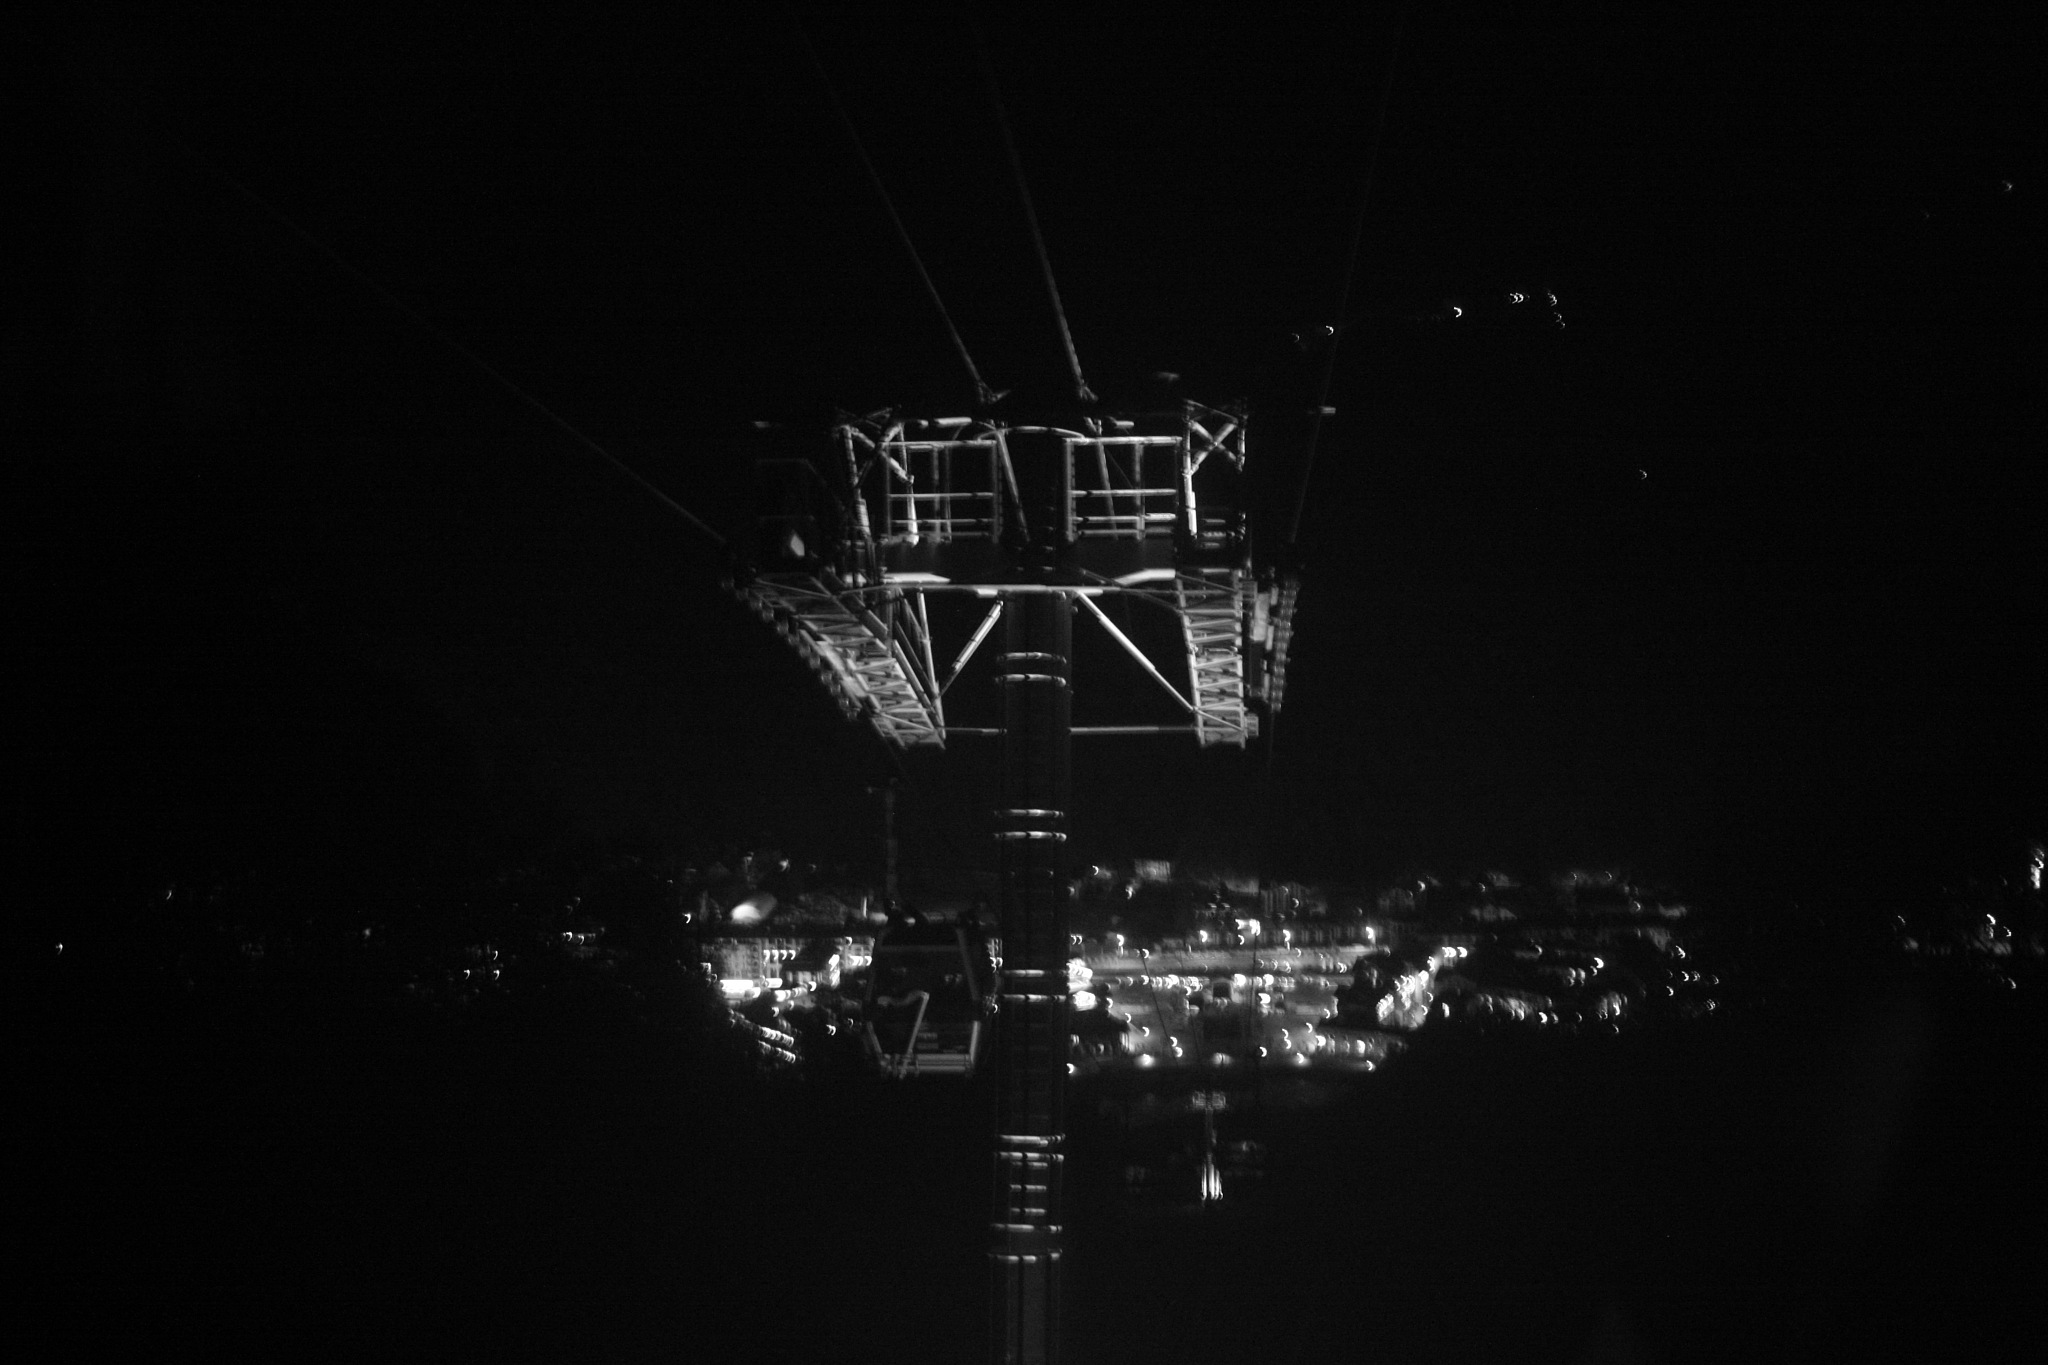 Night cable car.19 by Bobbyus